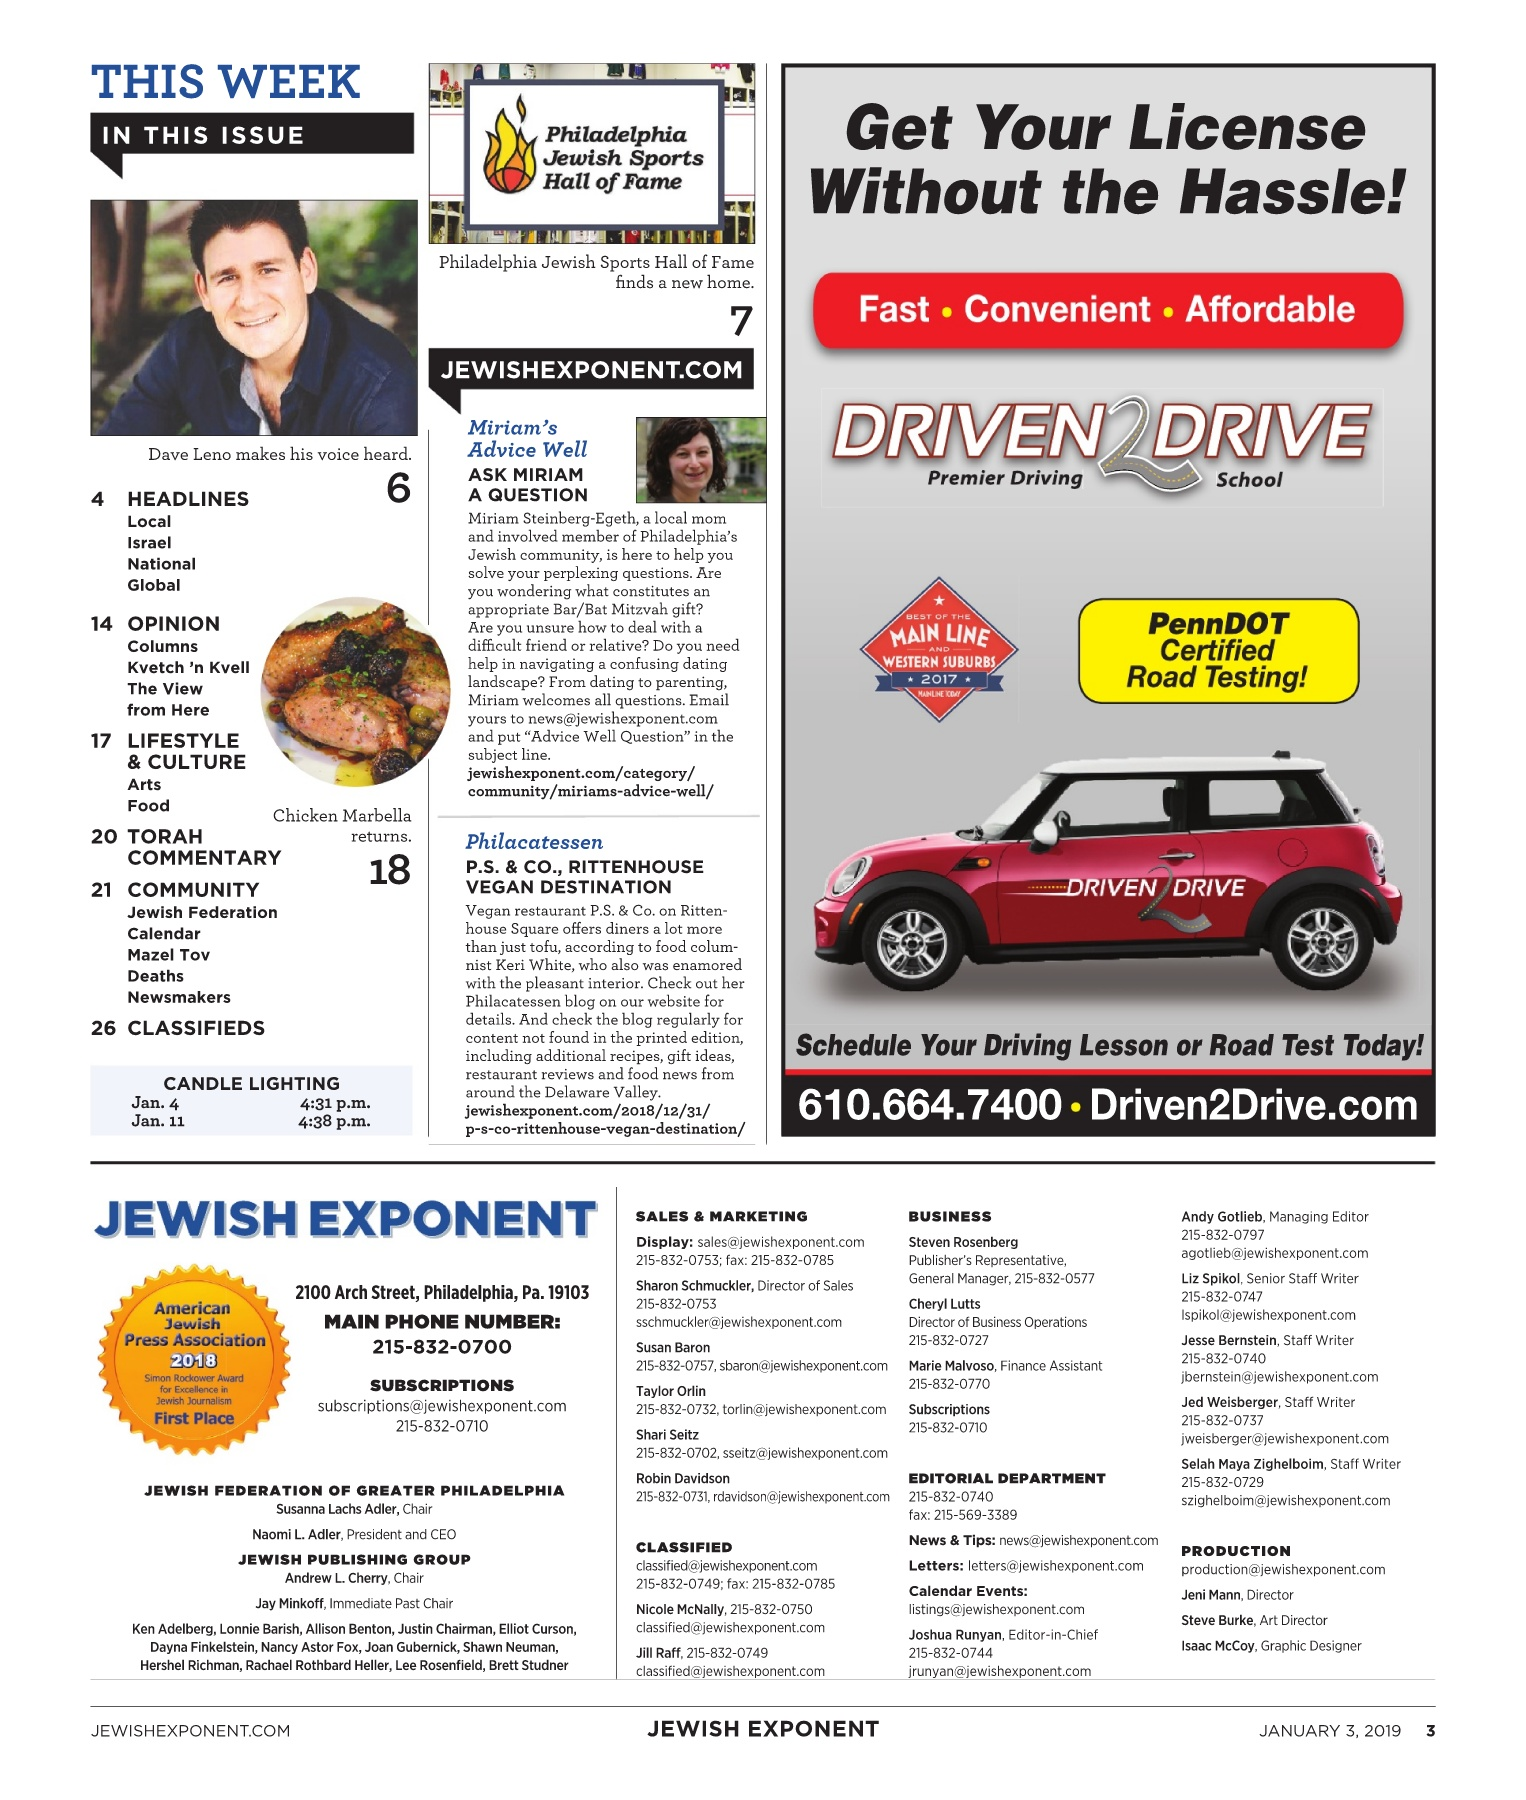 Jewish Exponent Jan  3, 2019 Pages 1 - 32 - Text Version | AnyFlip